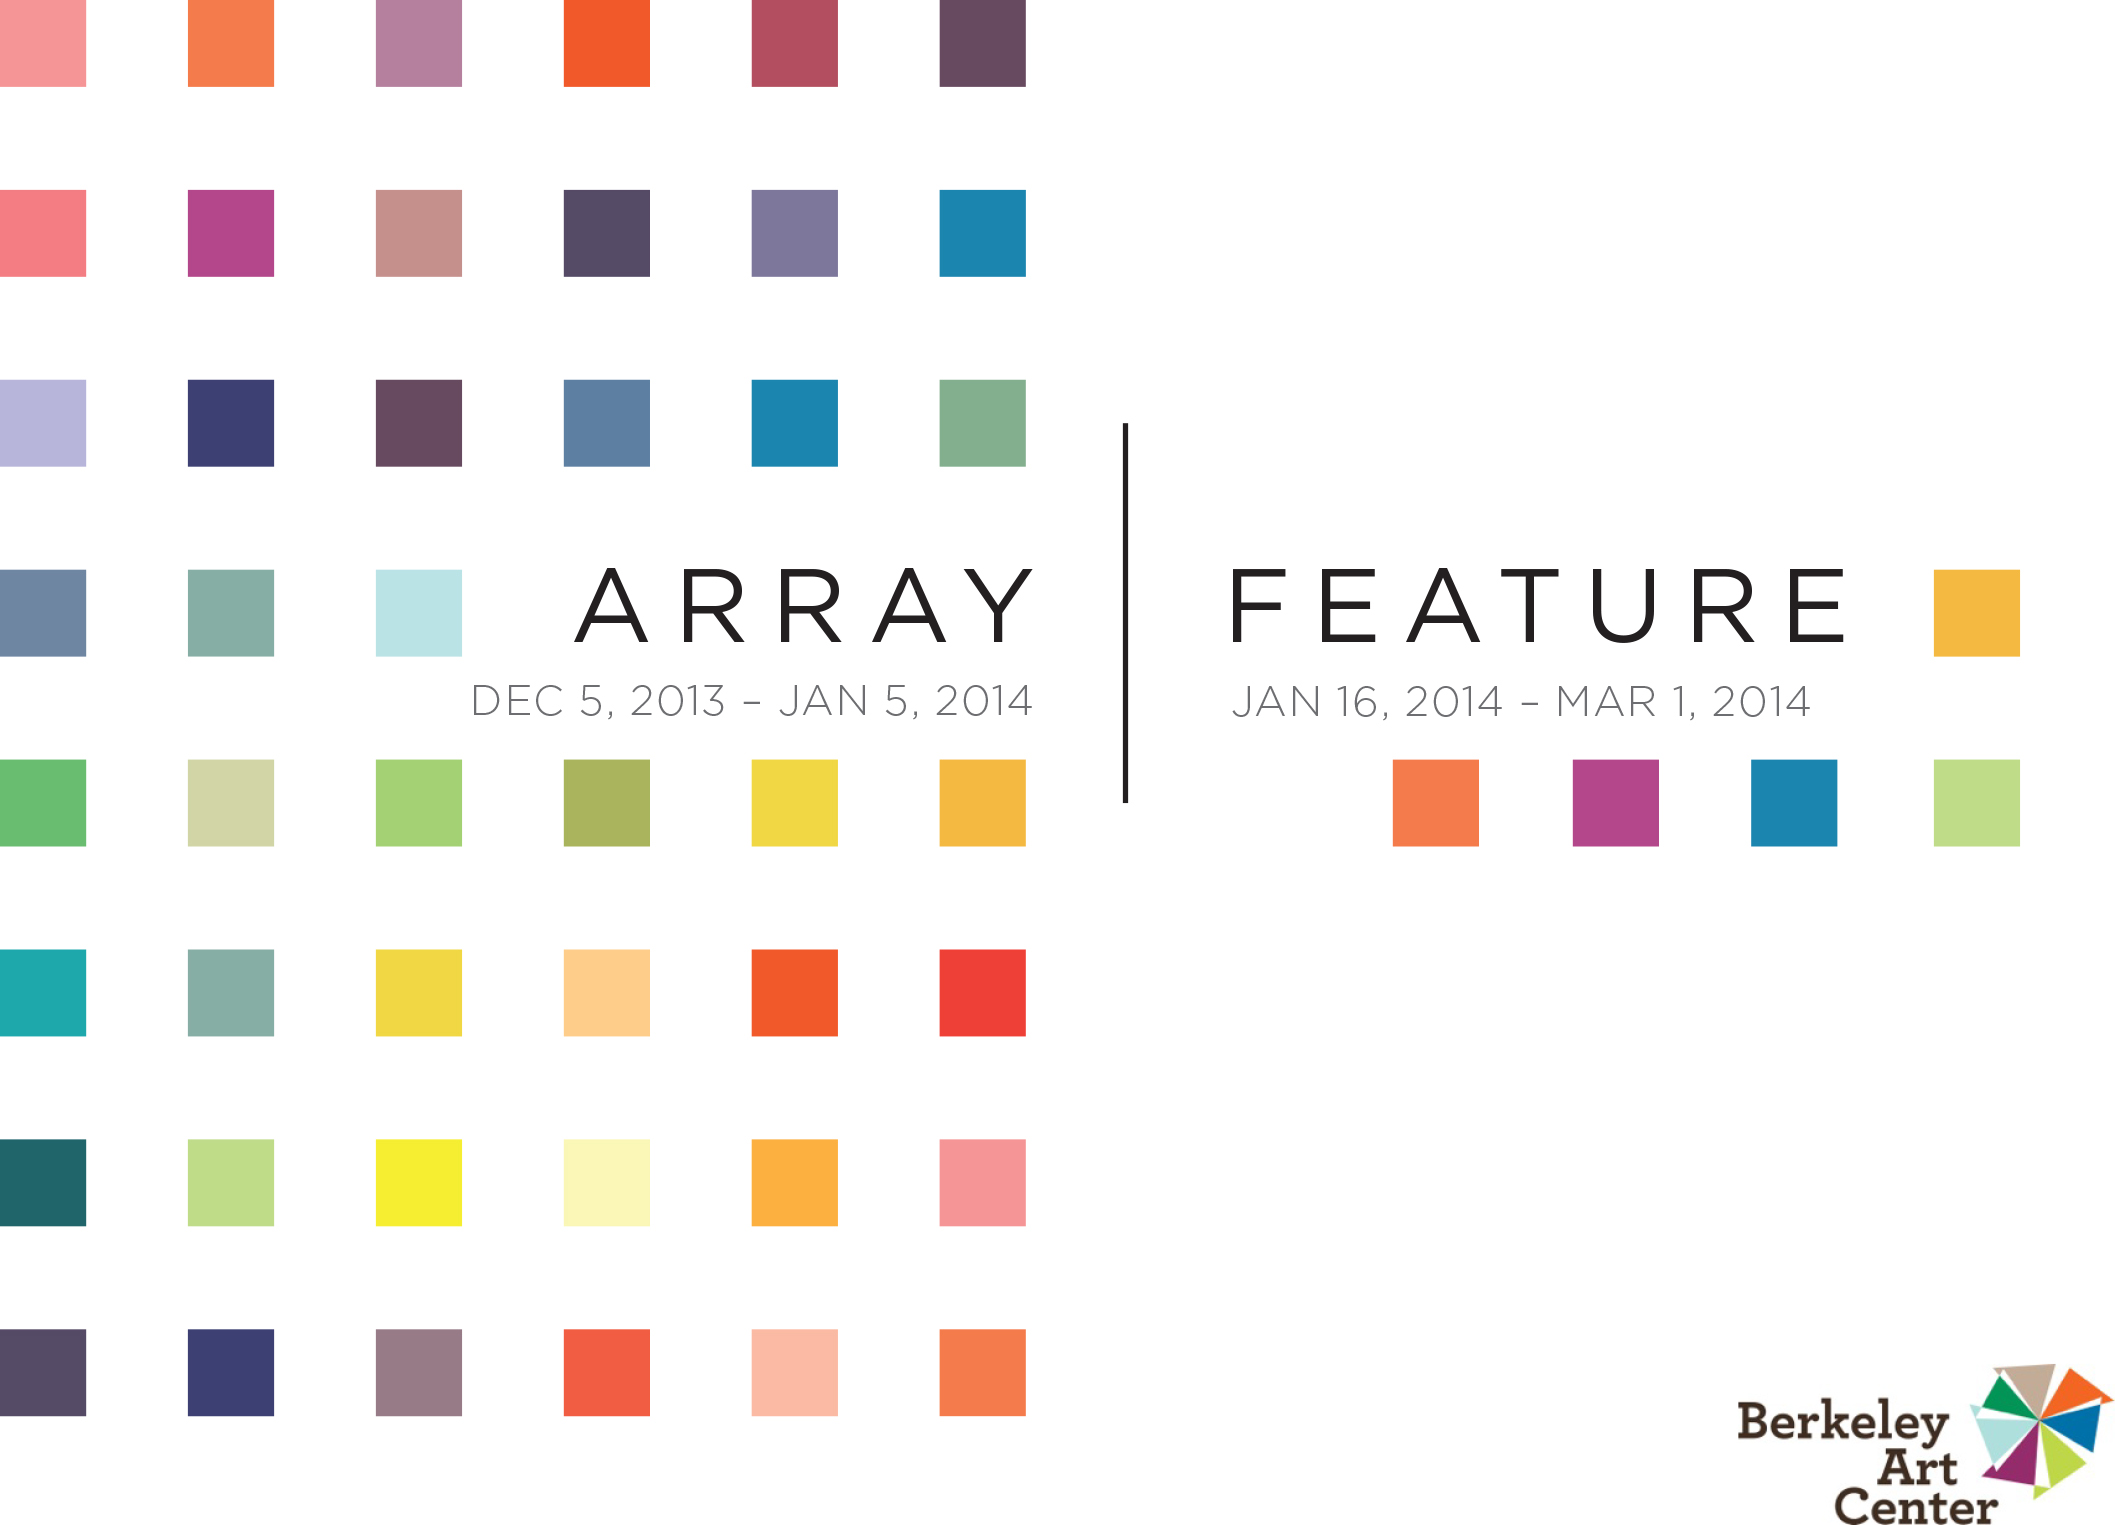 Array Exhibition